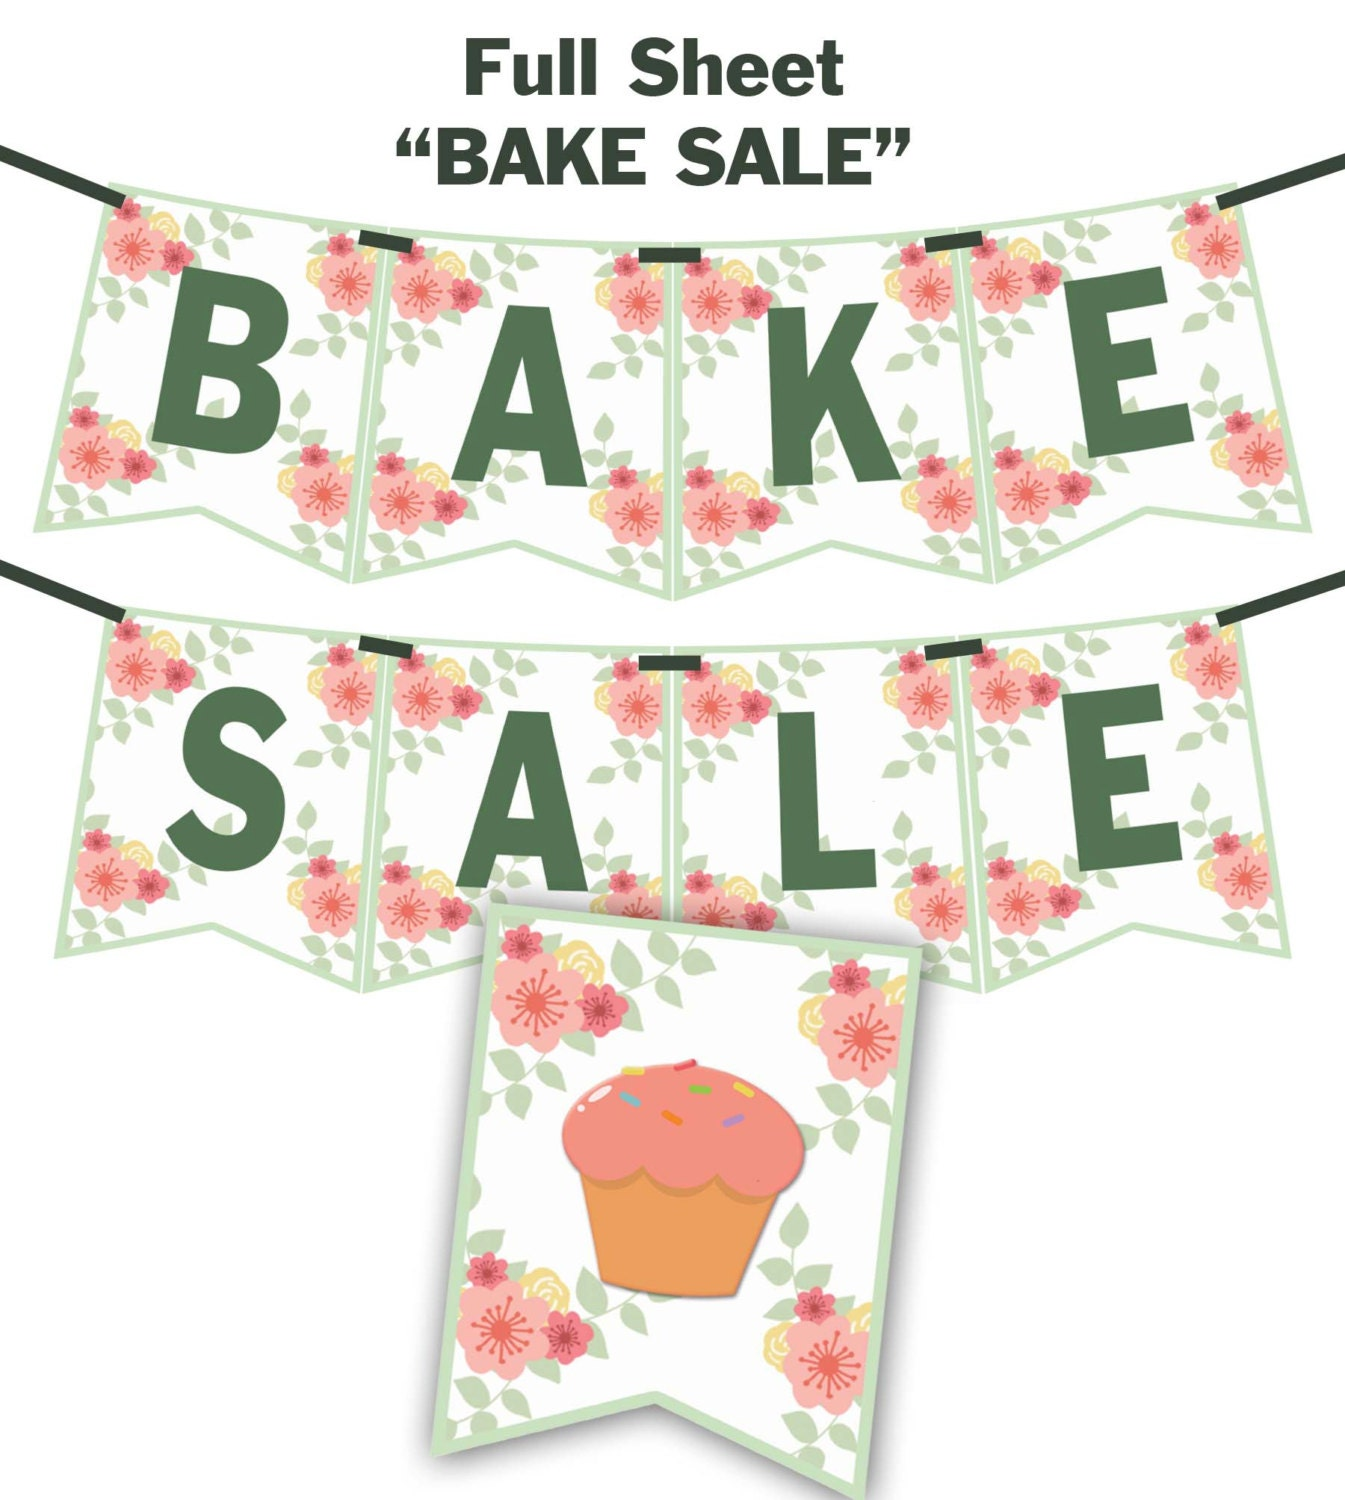 It's just a picture of Invaluable Free Printable Bake Sale Signs